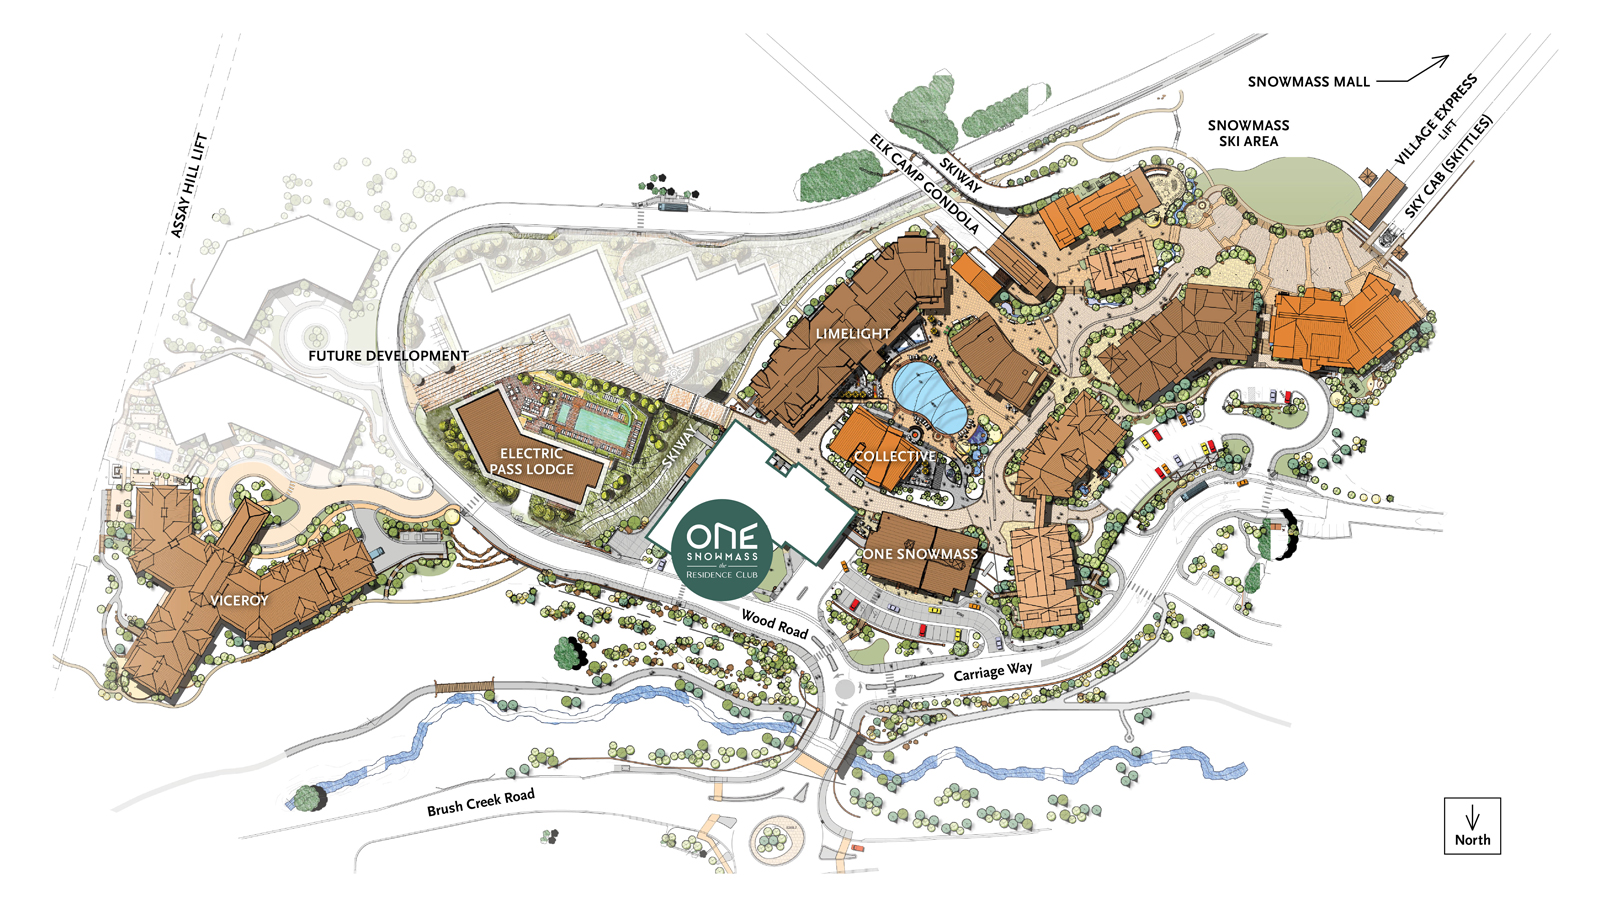 One Snowmass Residence Club Location Map